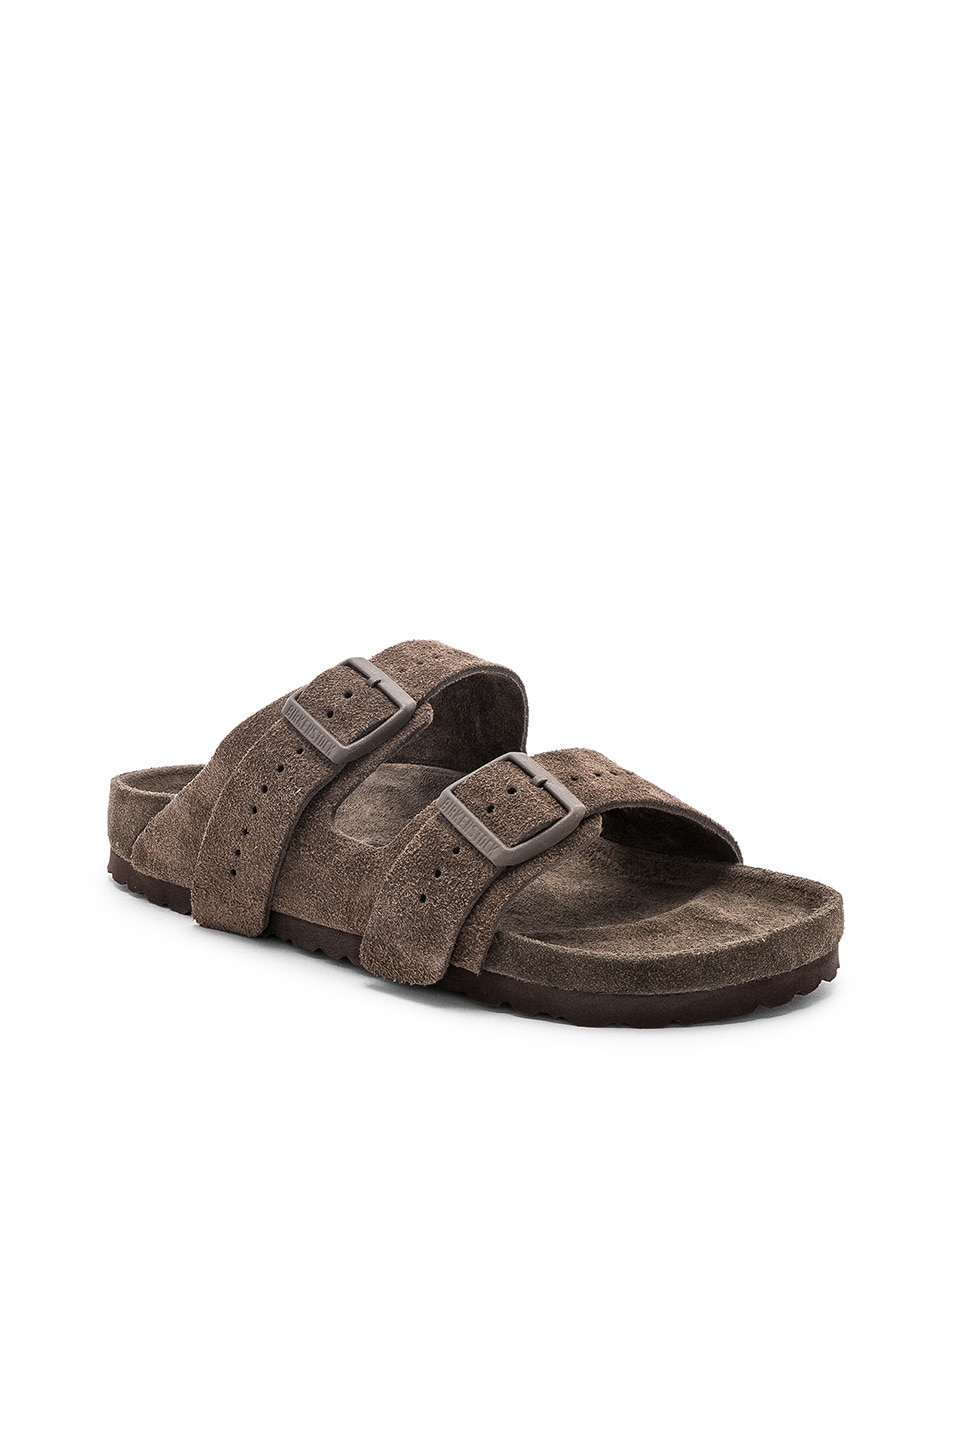 Image 1 of Rick Owens x Birkenstock Suede Arizona in Dust